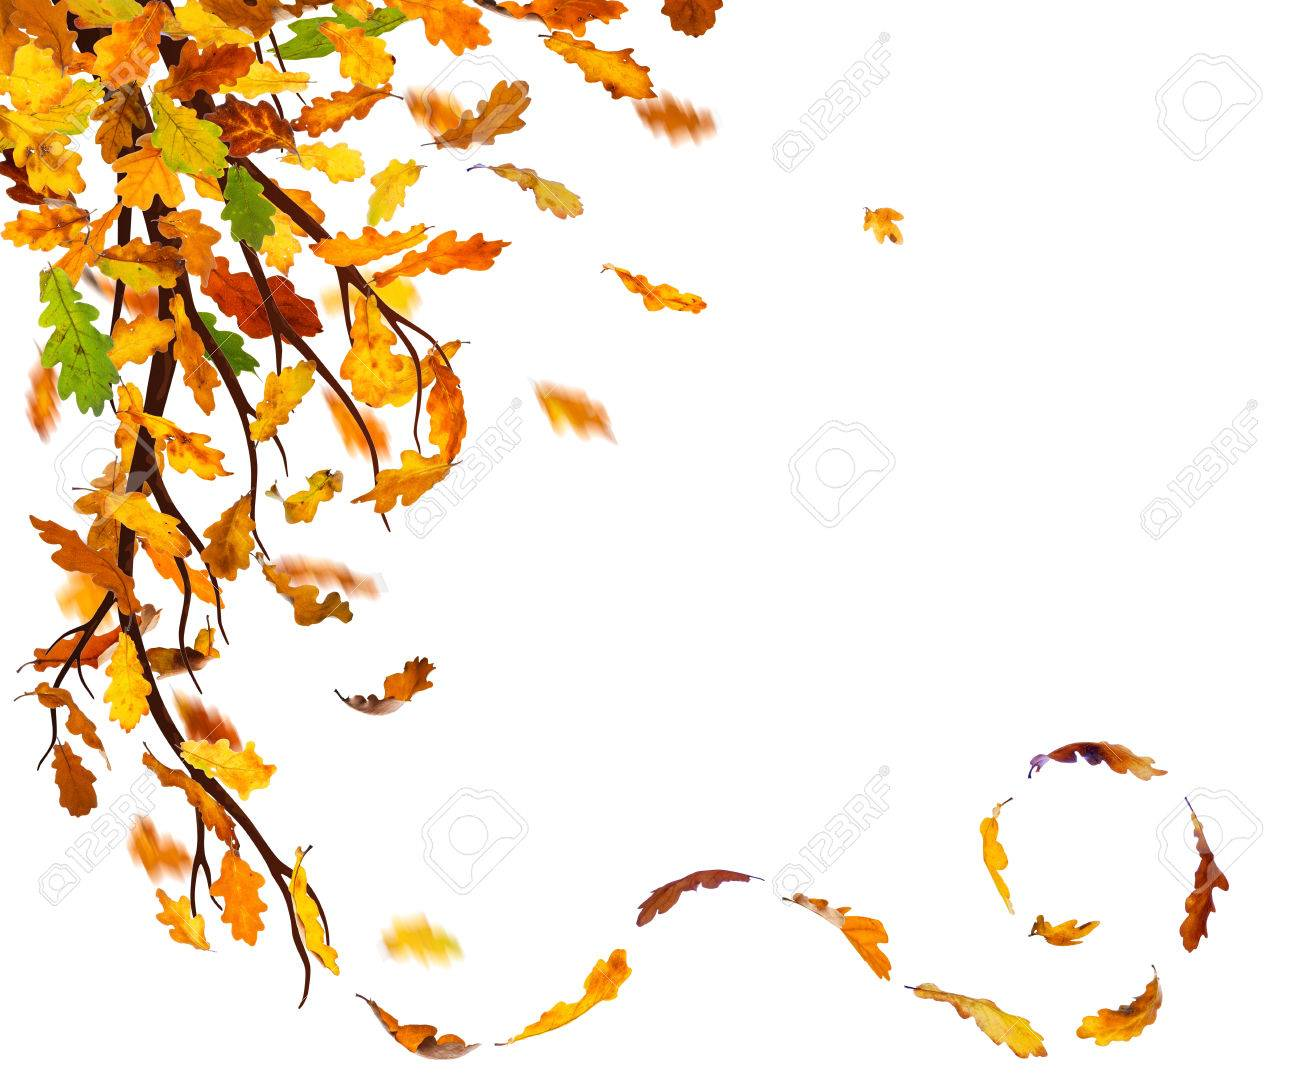 Famous 1 2 3 Nu Kapitel Resume Thin 1.5 Binder Spine Template Solid 1st Job Resume Template 2 Column Css Template Youthful 2 Page Brochure Template Blue2 Page Resume Template Download Branch With Autumn Oak Leaves Falling Down On White Background ..